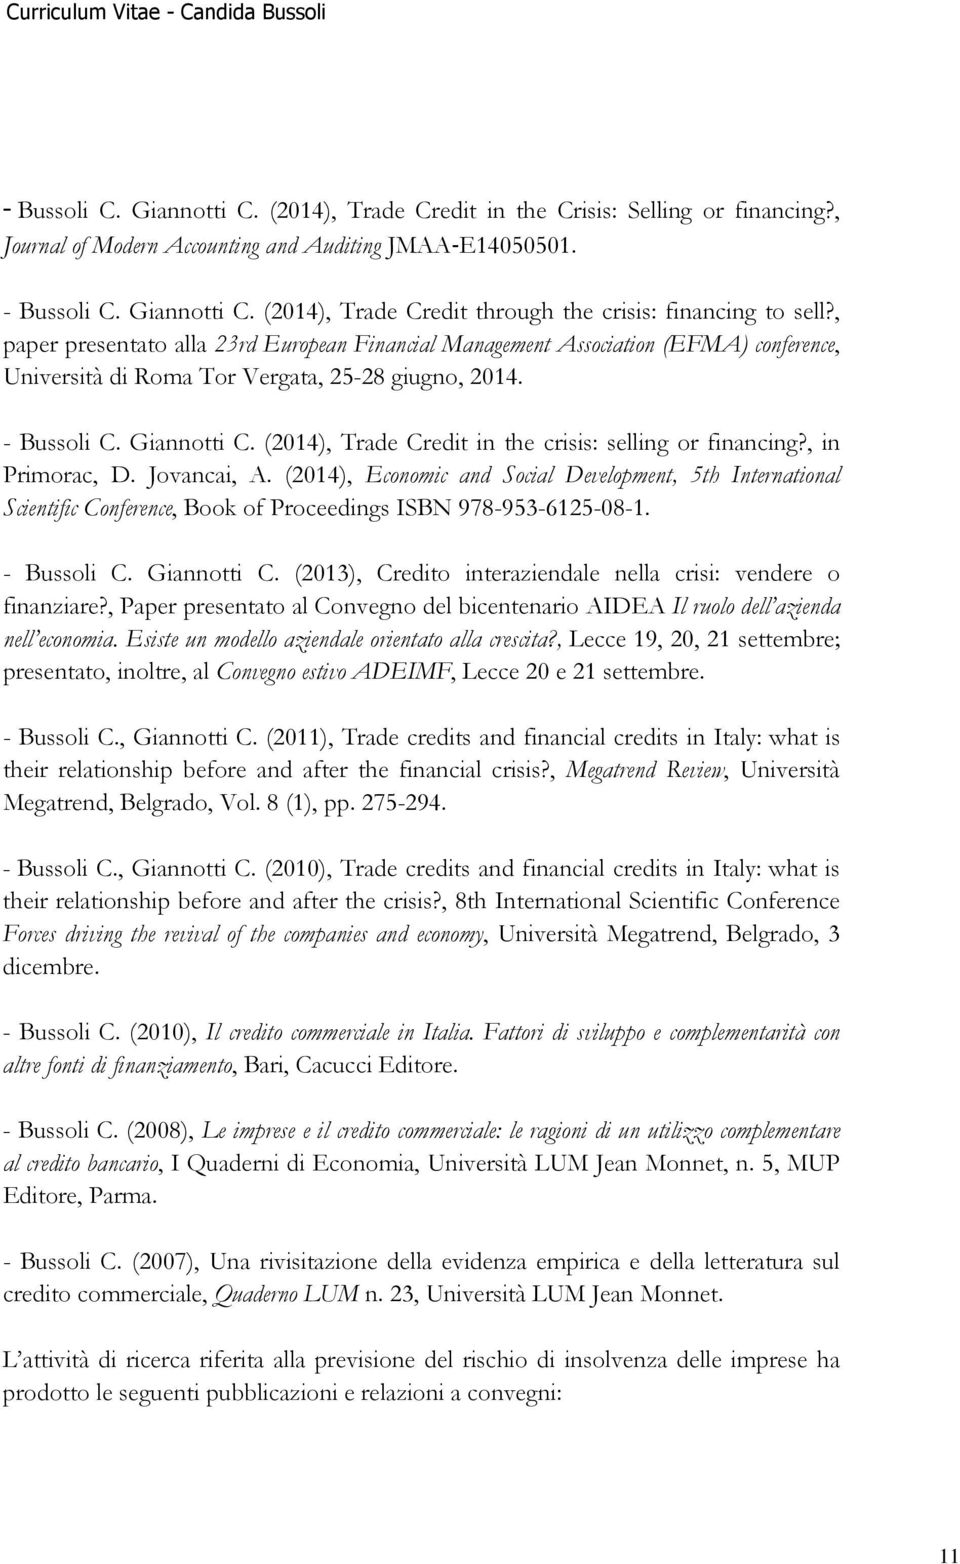 (2014), Trade Credit in the crisis: selling or financing?, in Primorac, D. Jovancai, A.